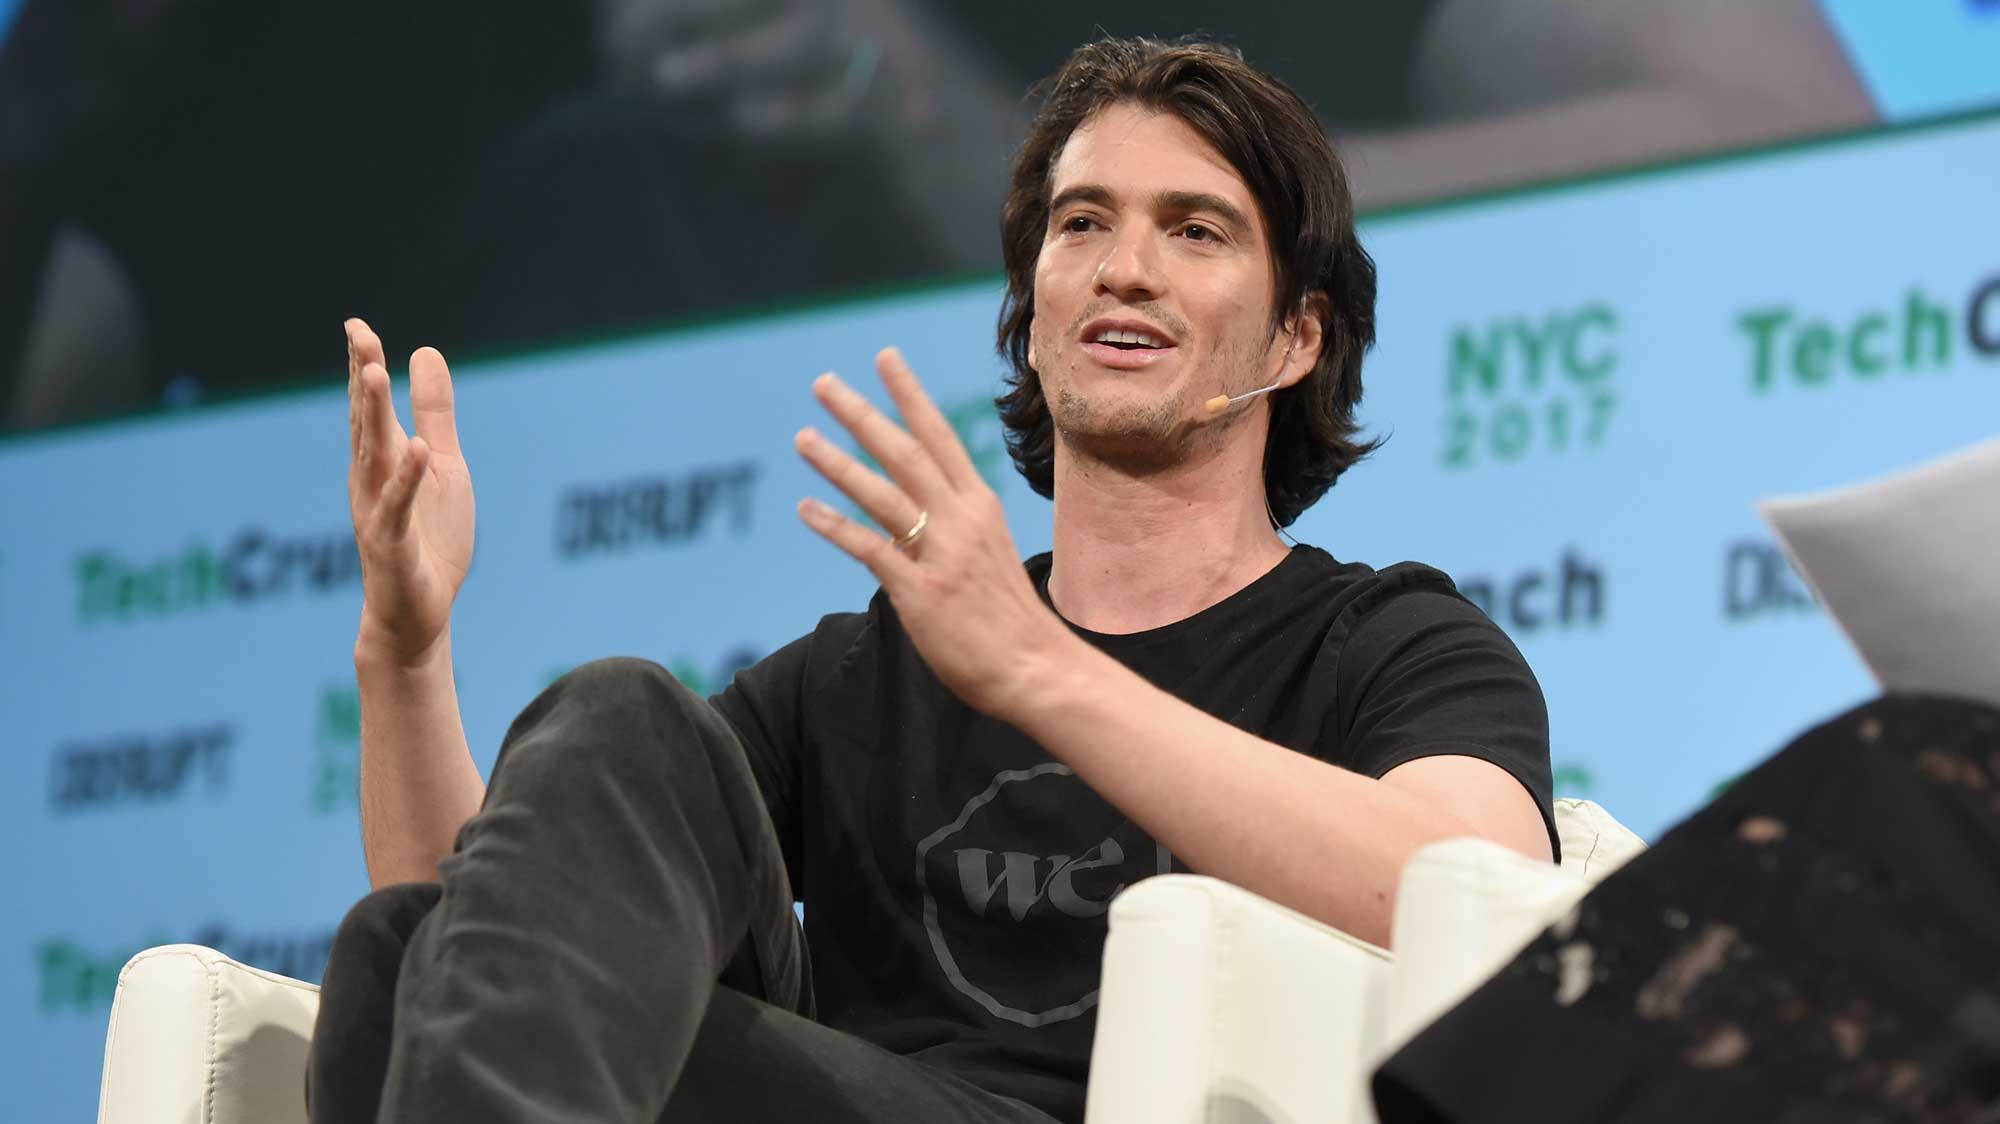 WeWork is starting a $3 billion fund to buy stakes in buildings